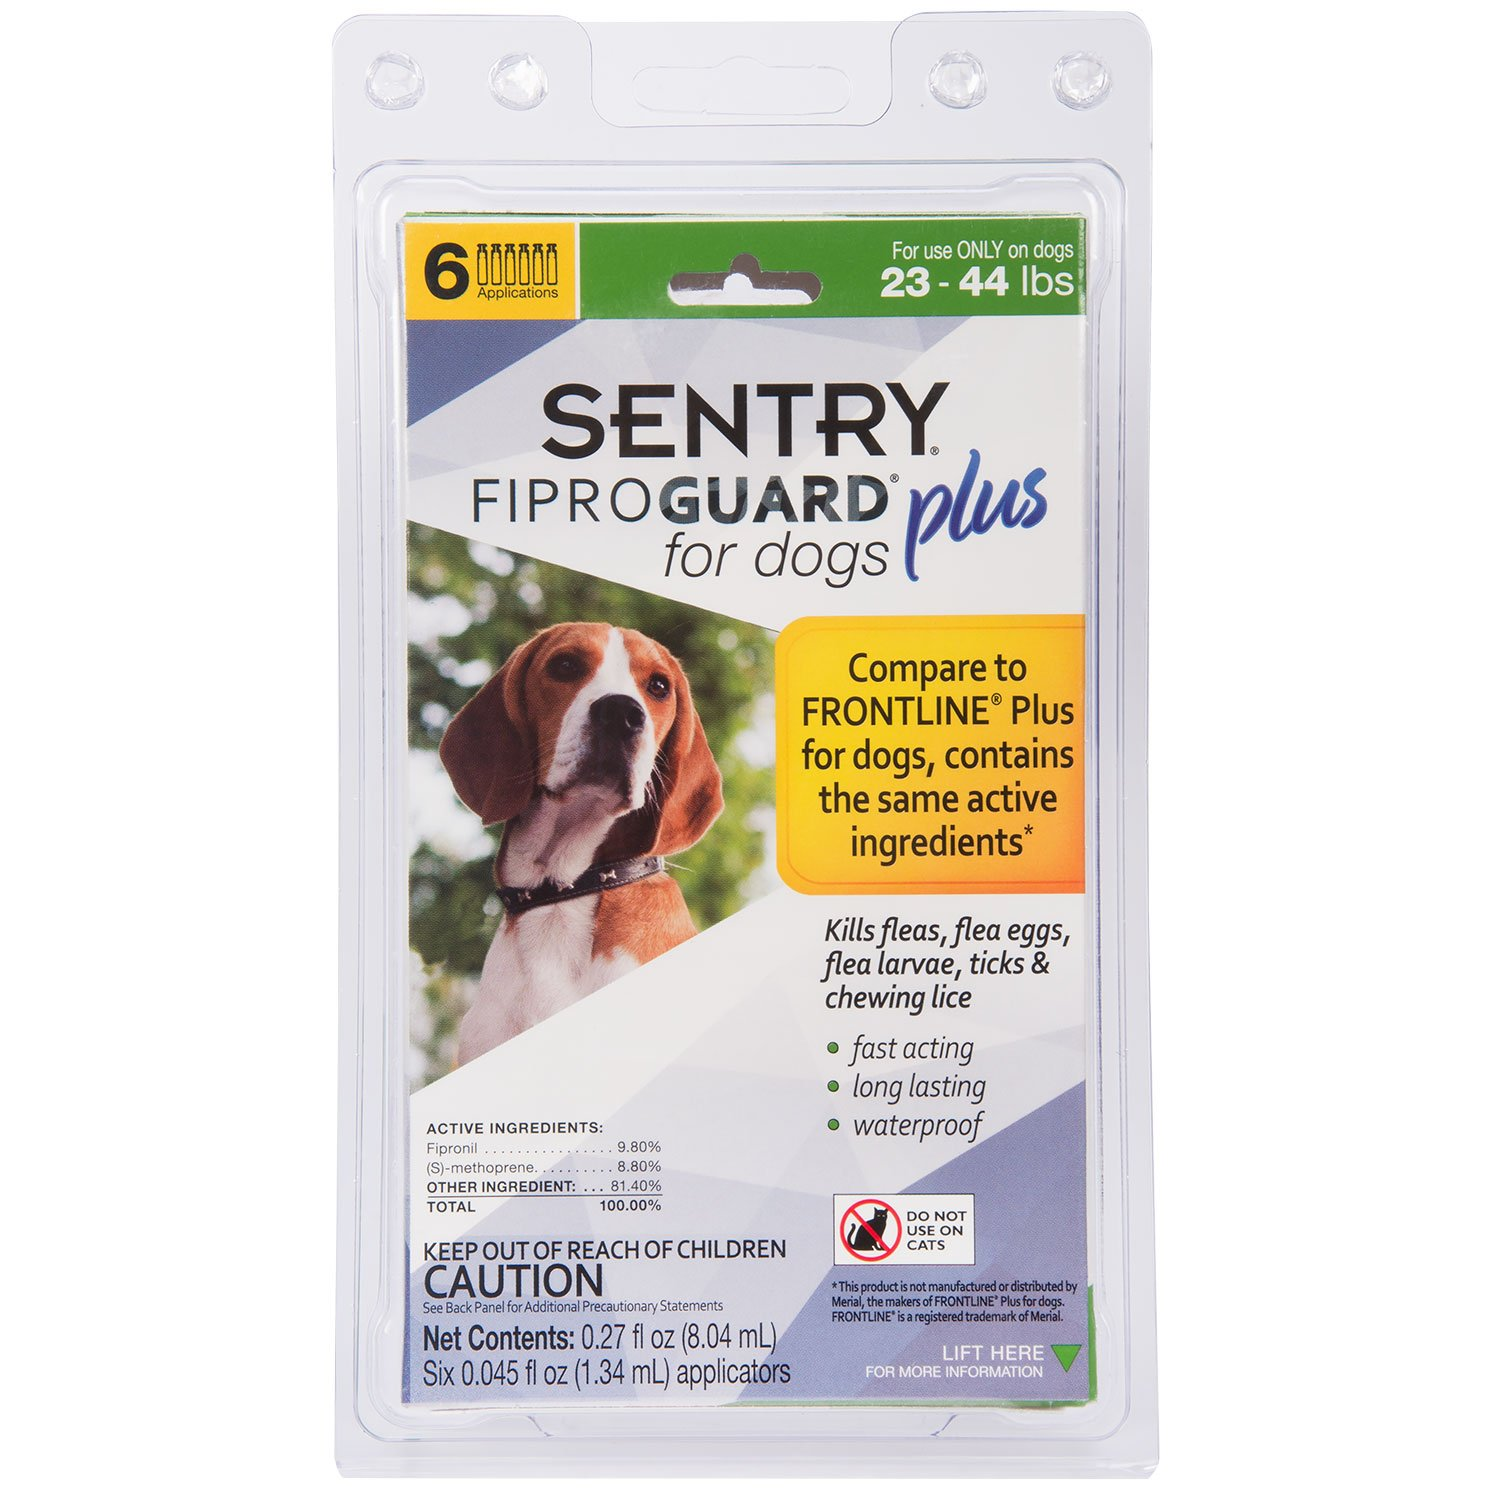 SENTRY Fiproguard Plus for Dogs, Flea and Tick Prevention for Dogs (23-44 Pounds), Includes 6 Month Supply of Topical Flea Treatments by SENTRY Pet Care